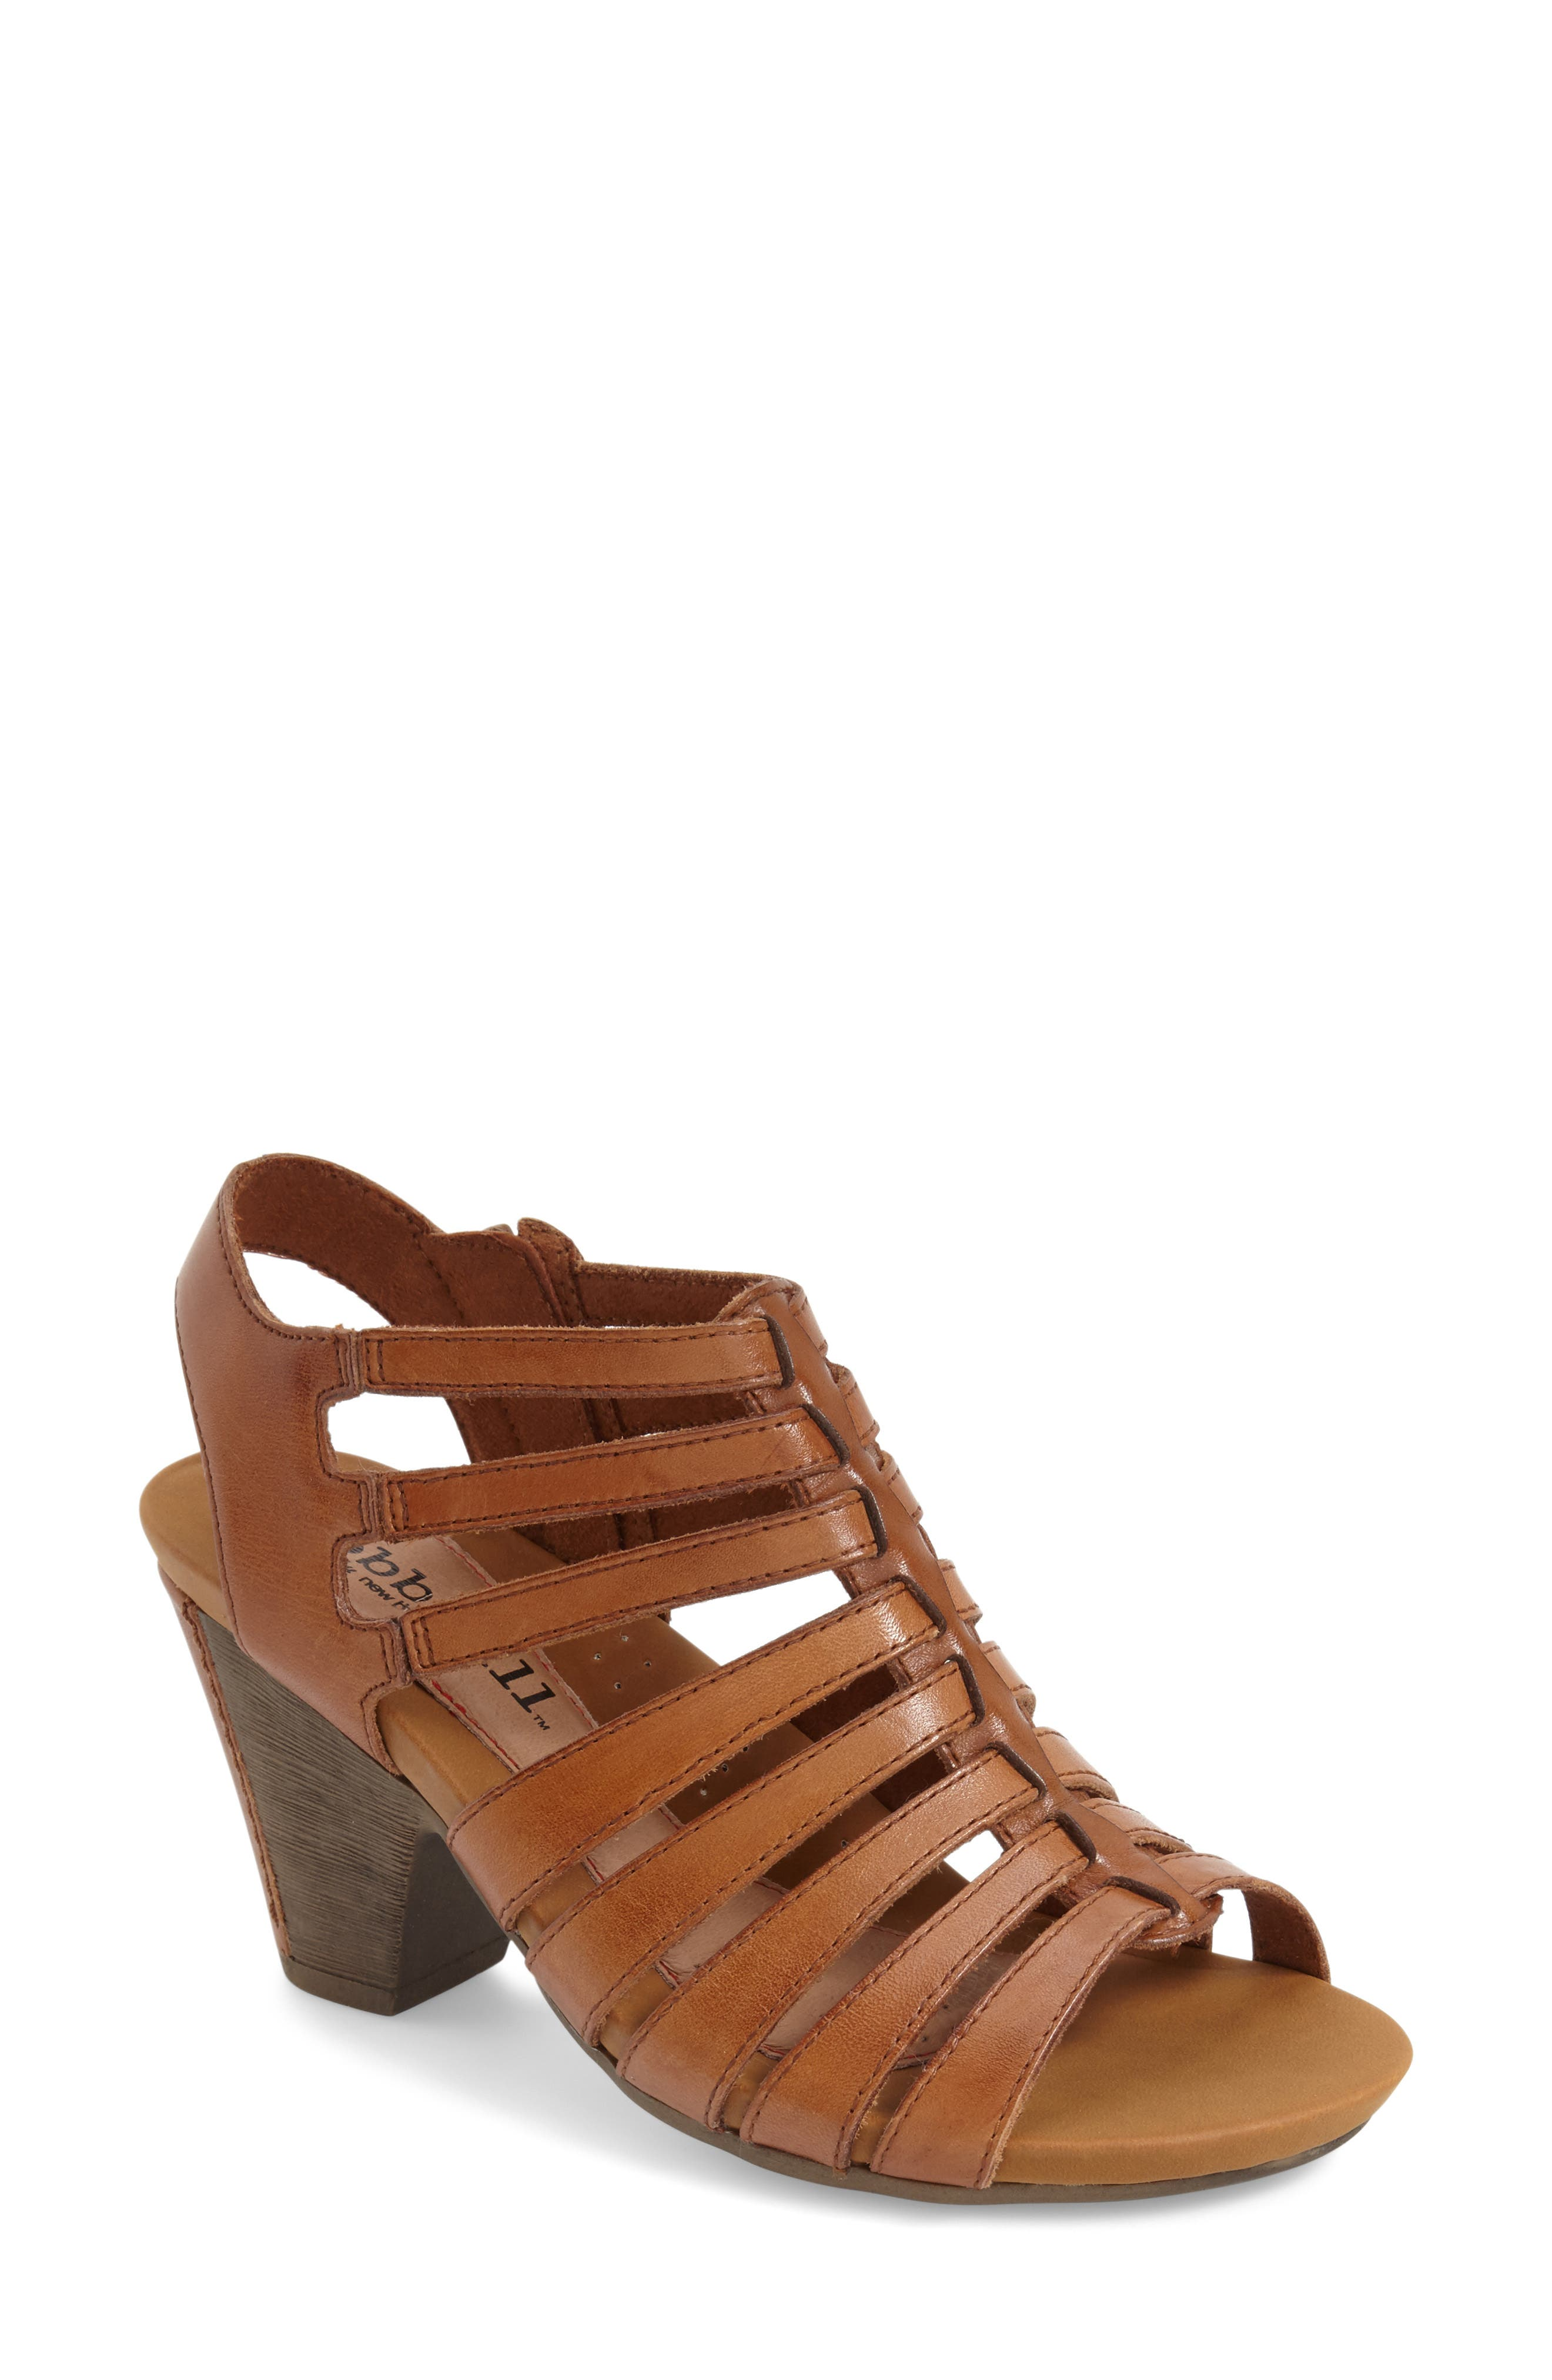 'Taylor' Caged Sandal,                             Alternate thumbnail 3, color,                             TAN LEATHER